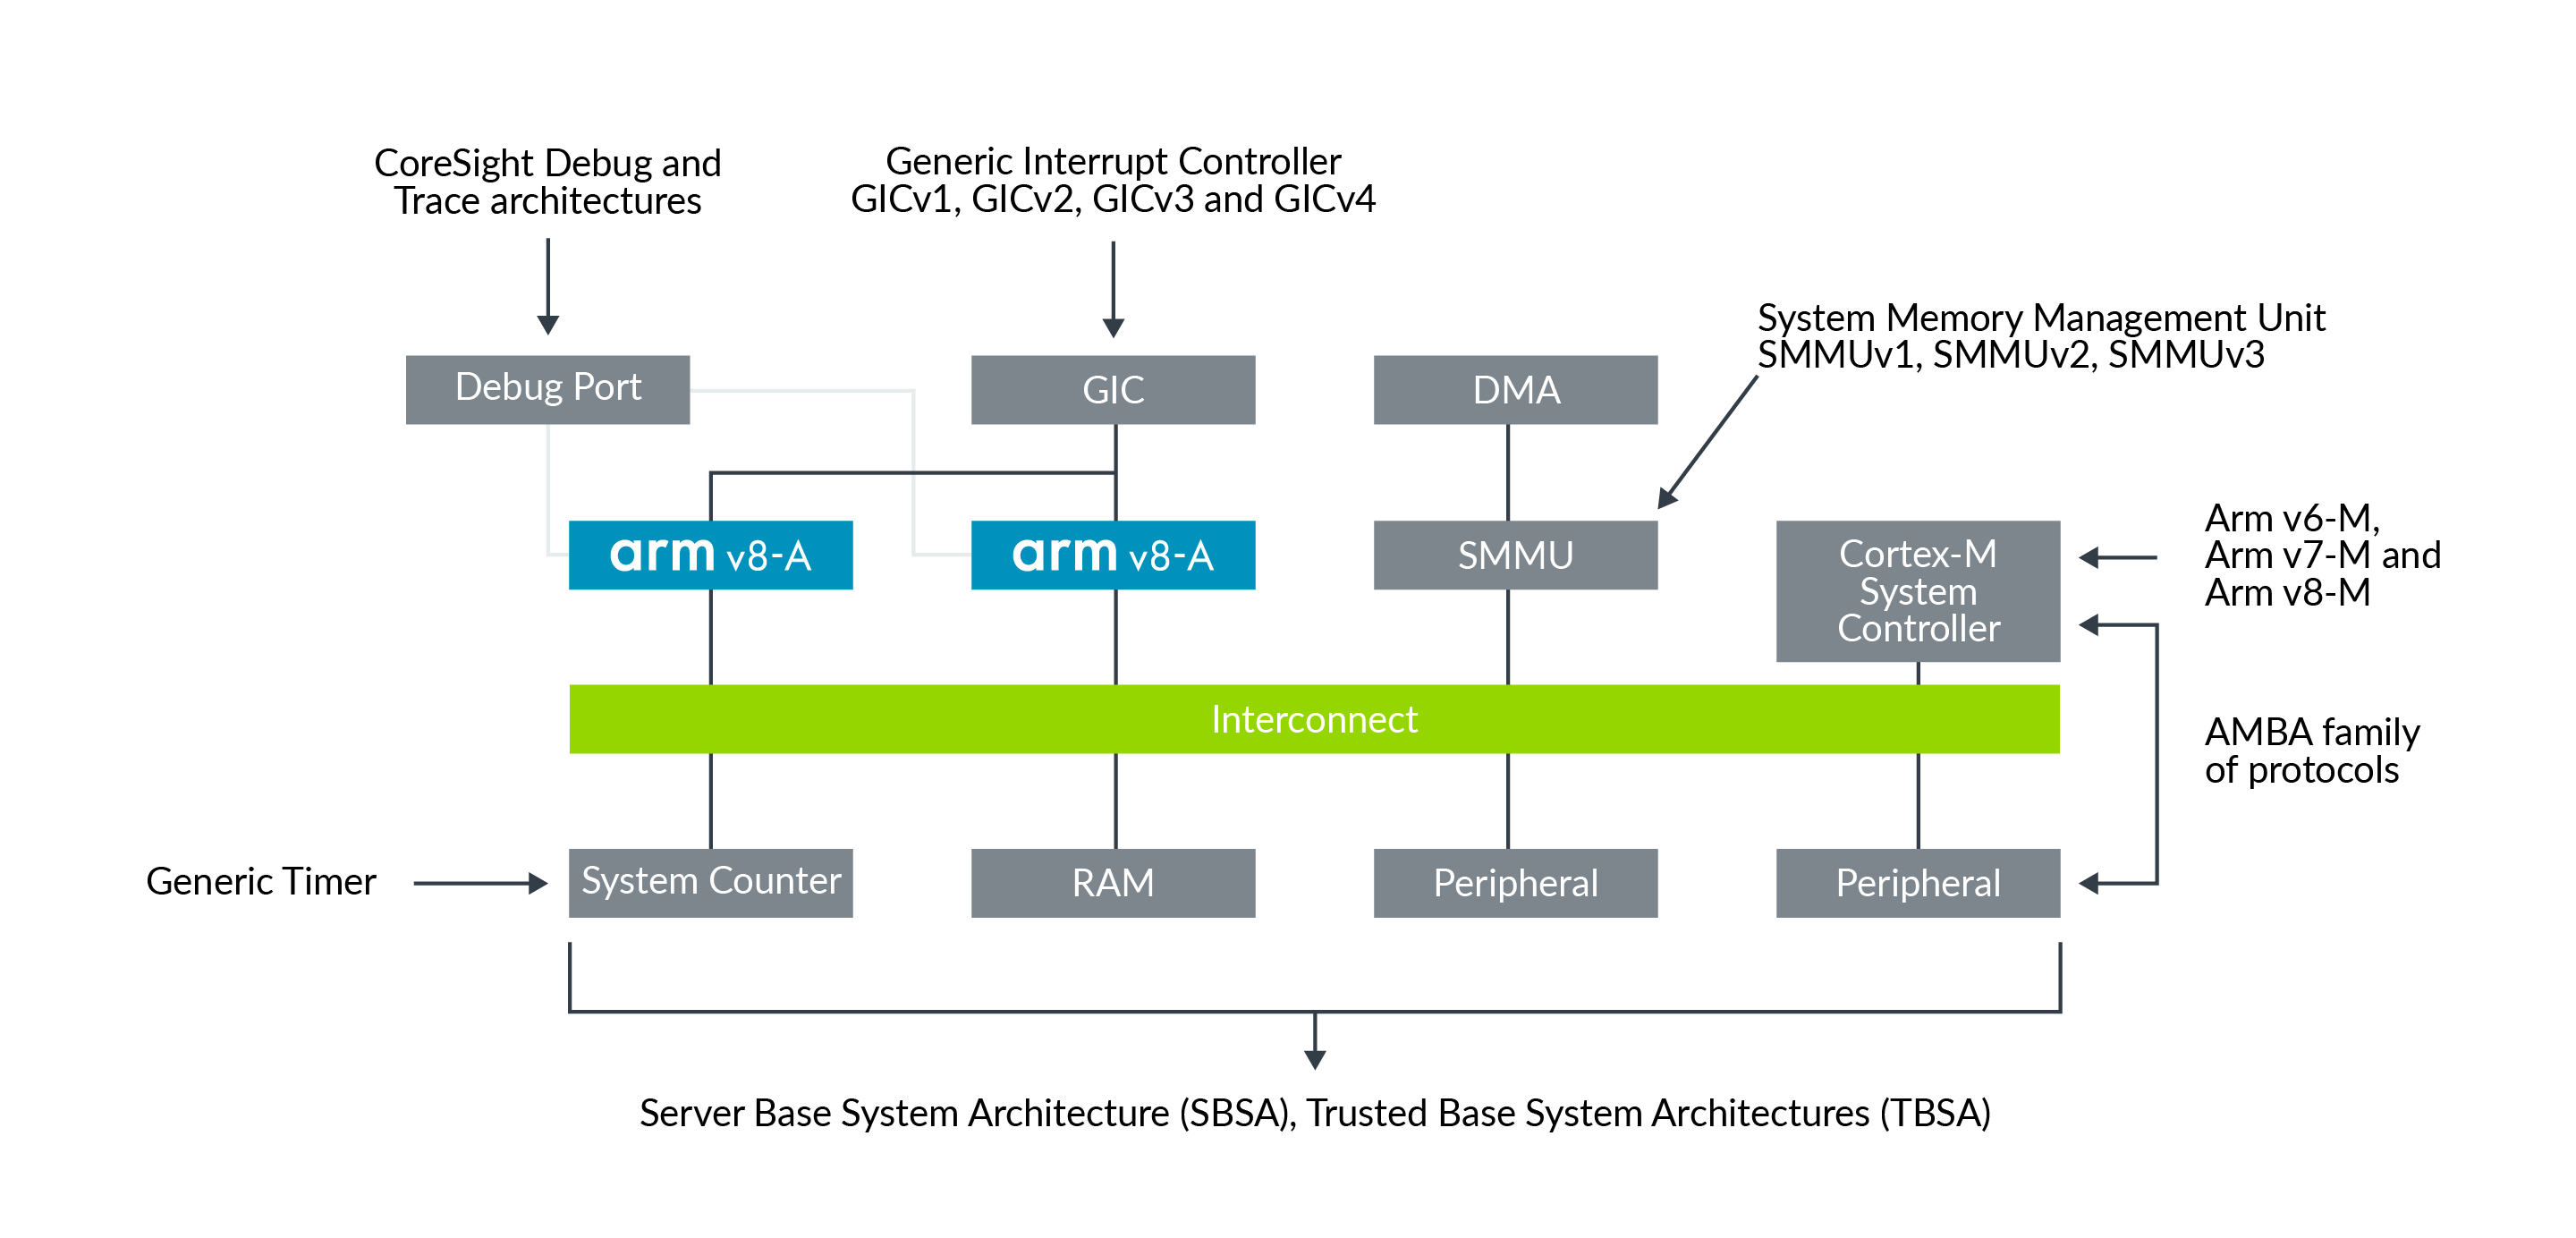 Architectures in a modern SoC.